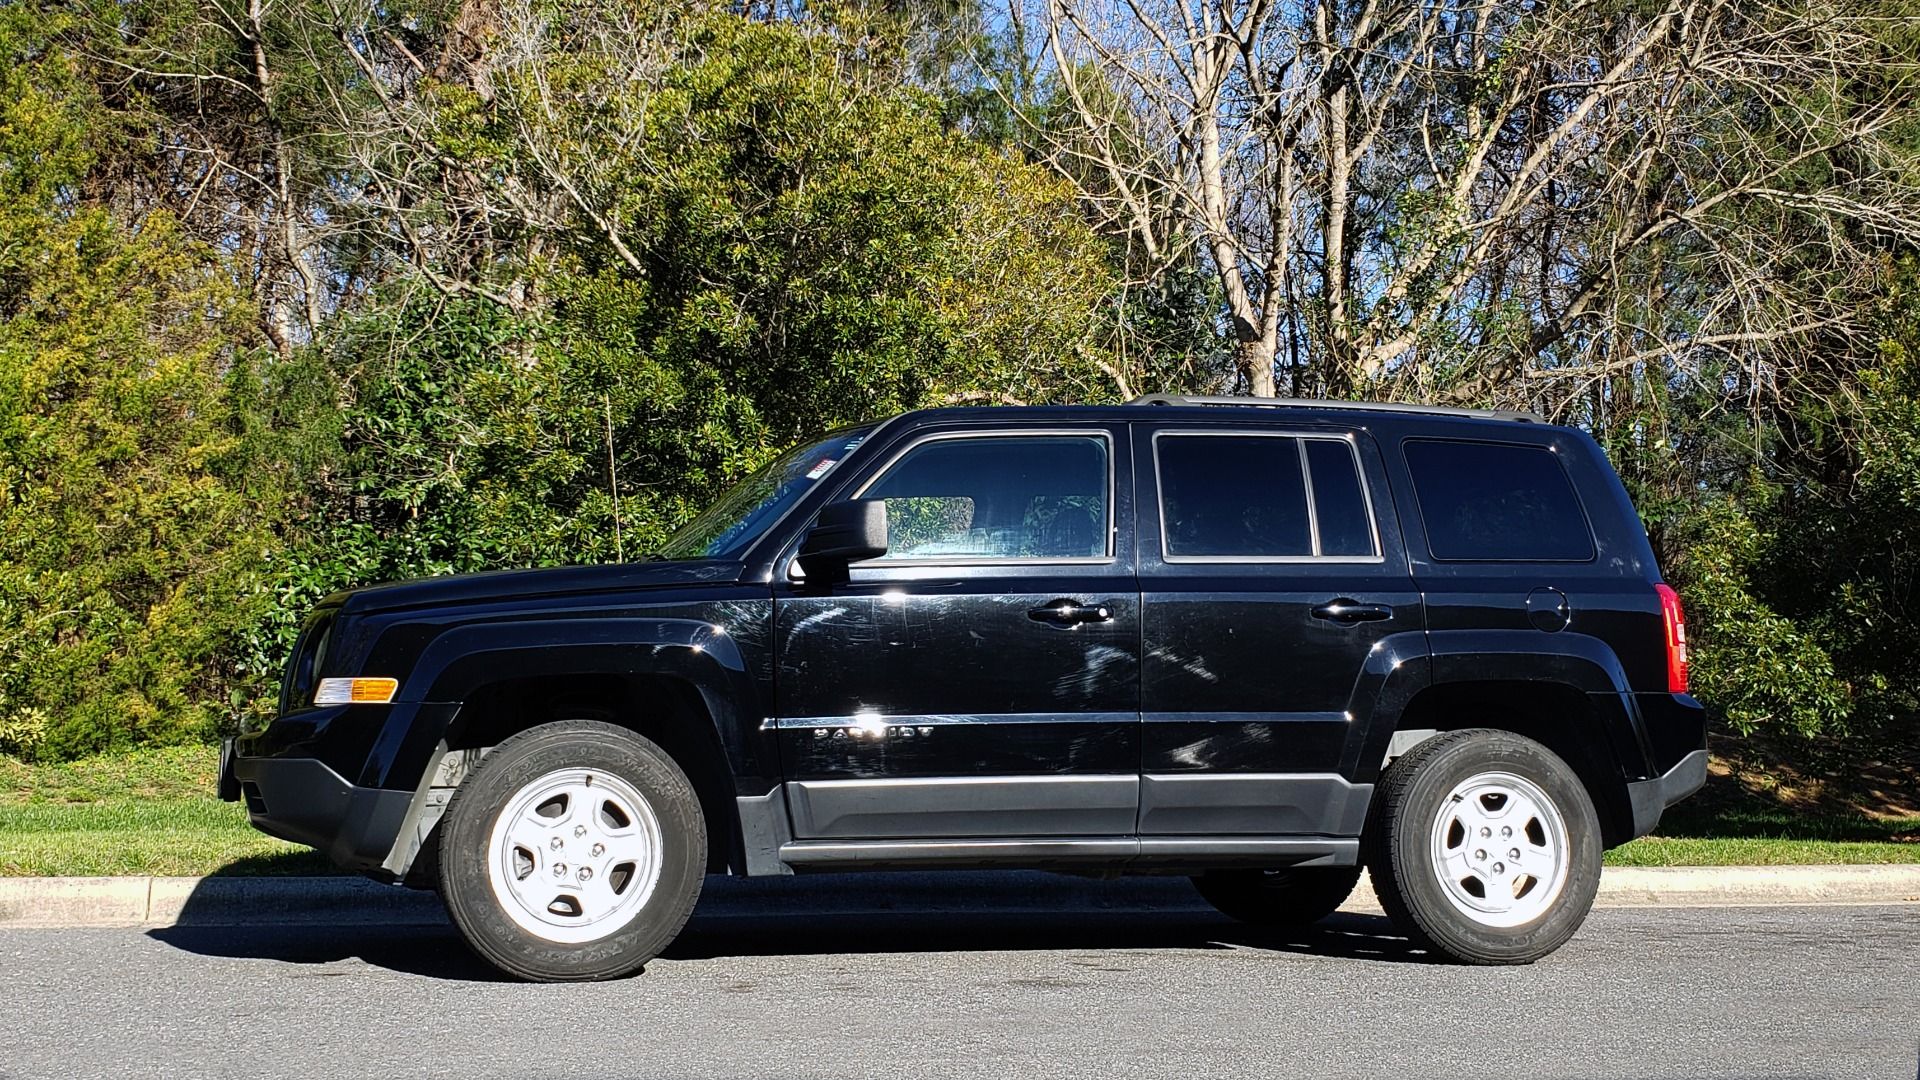 Used 2014 Jeep PATRIOT SPORT / 4WD 4-DR / POWER VALUE GRP / 4-CYL / 6-SPD AUTO for sale Sold at Formula Imports in Charlotte NC 28227 3